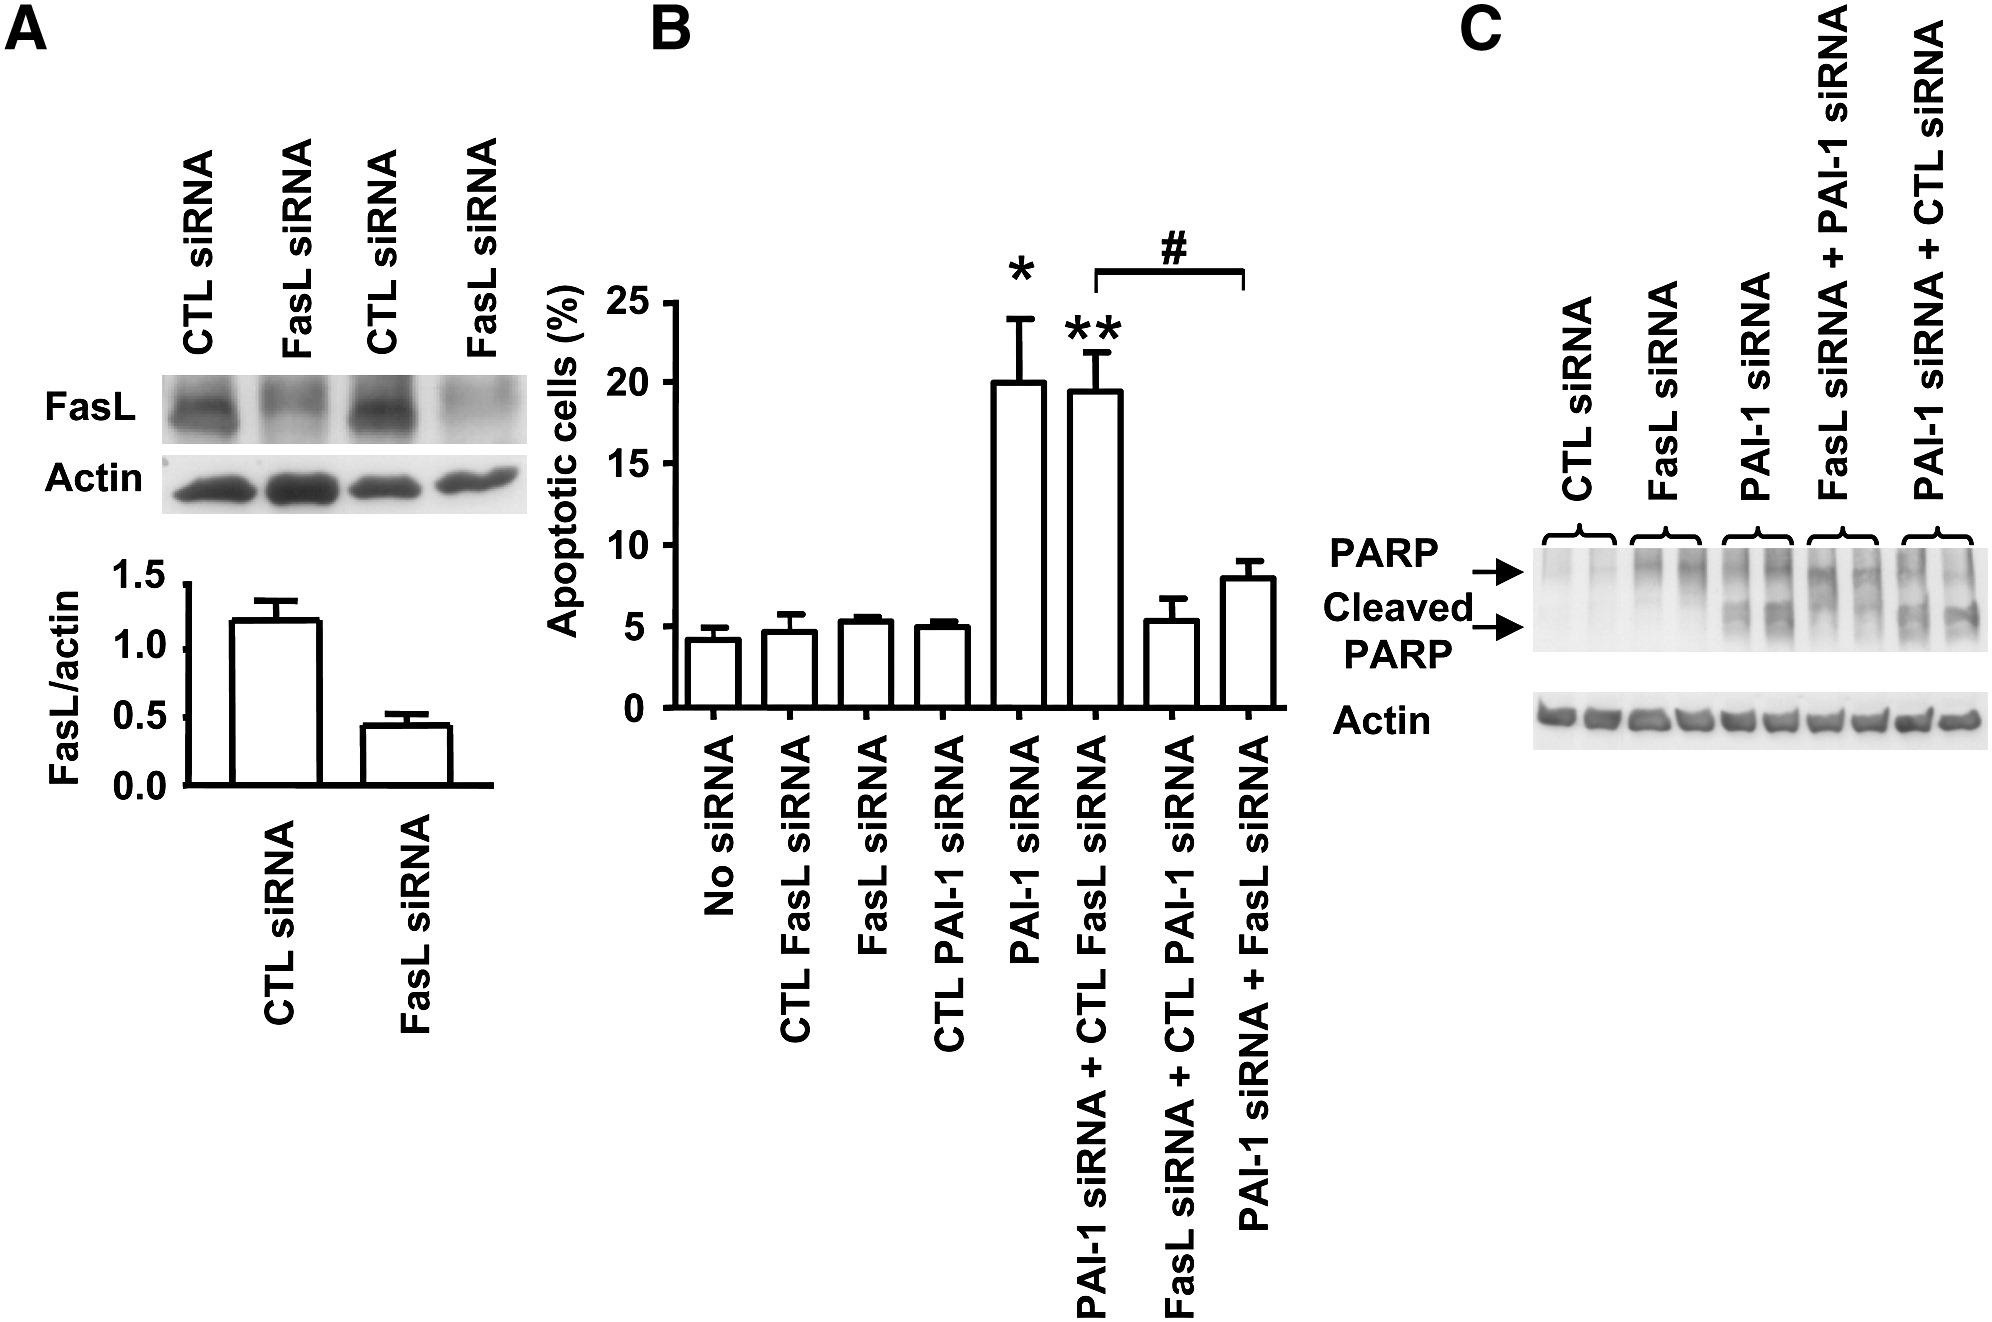 Plasminogen Activator Inhibitor 1 Protects Endothelial Cells From Fasl Mediated Apoptosis